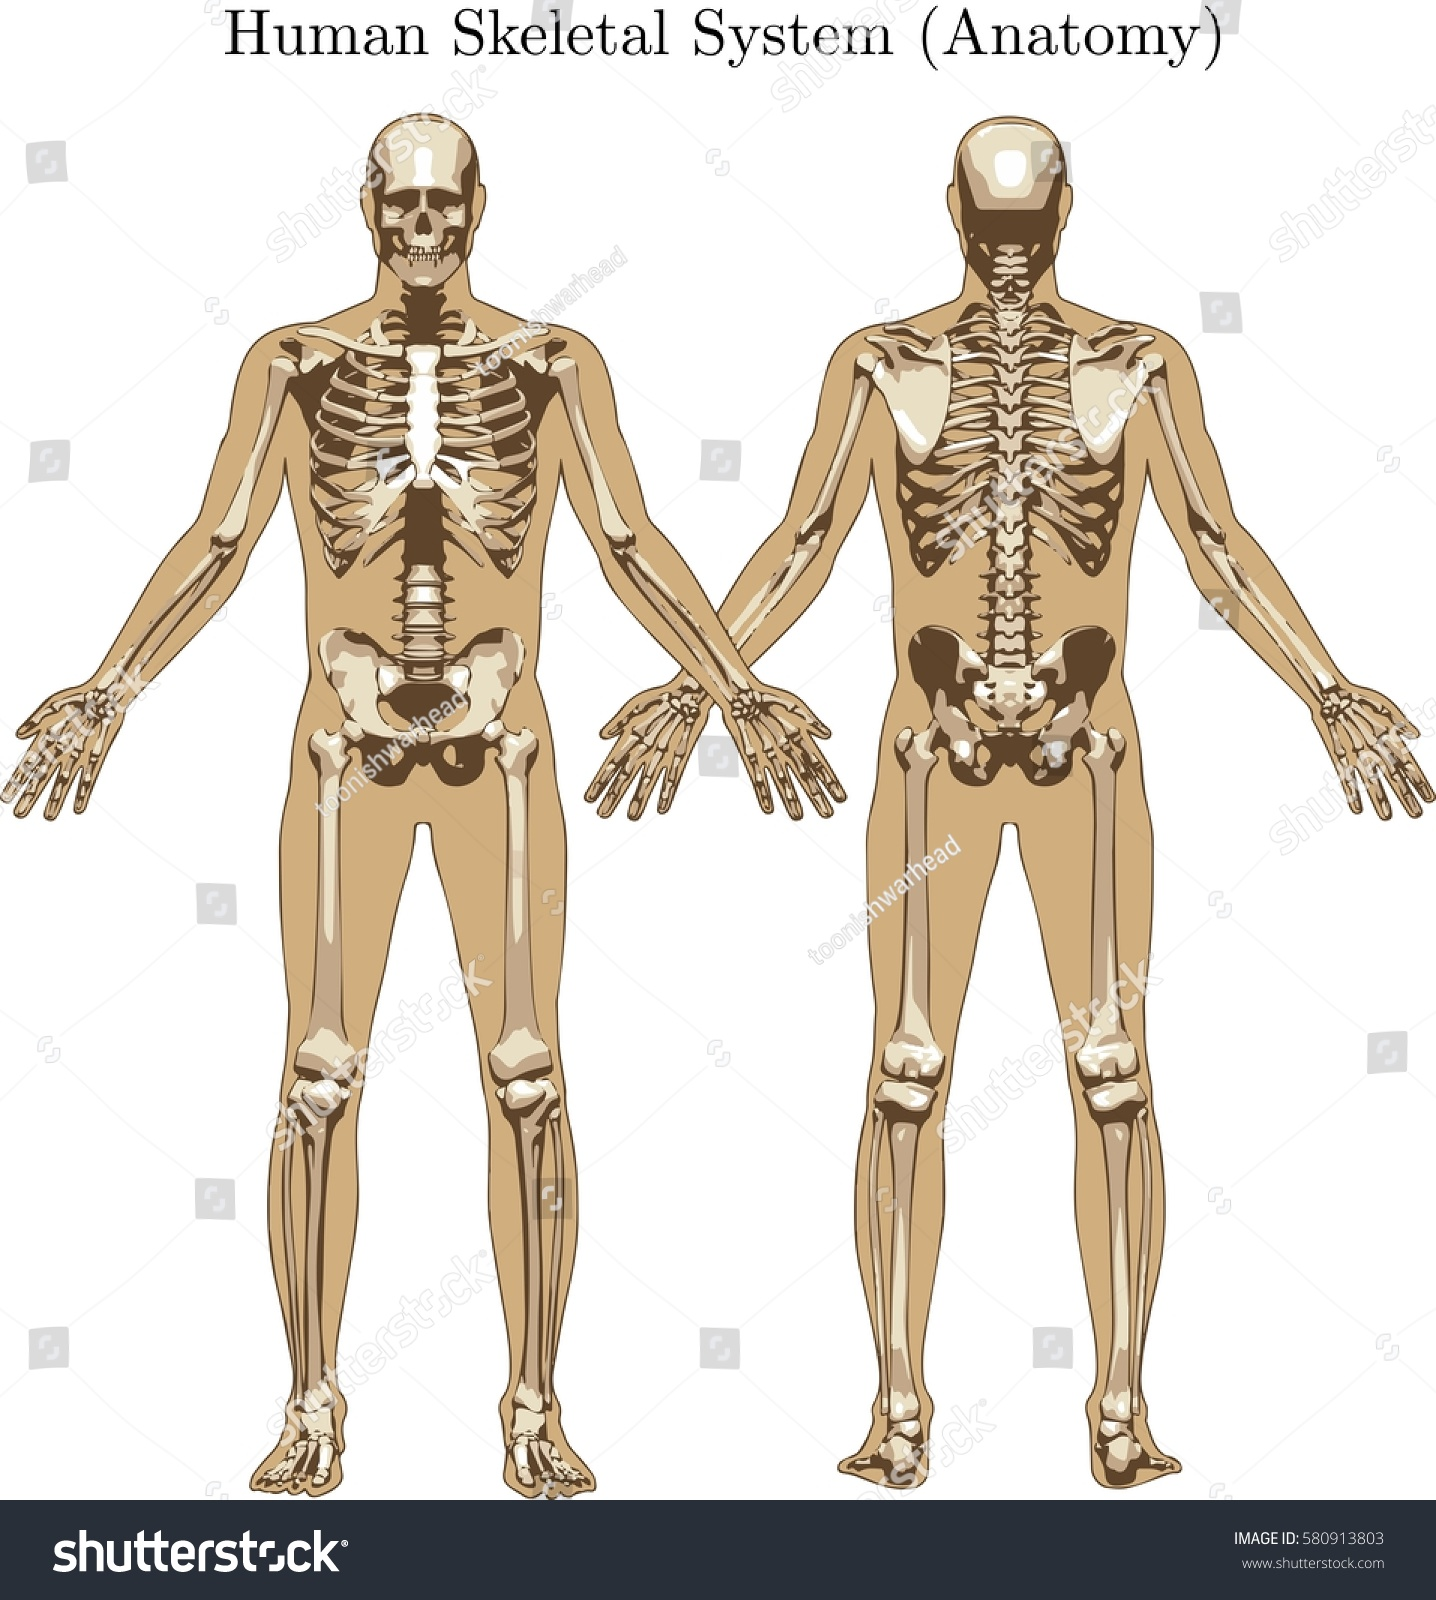 Royalty Free Human Skeletal System With All The 580913803 Stock